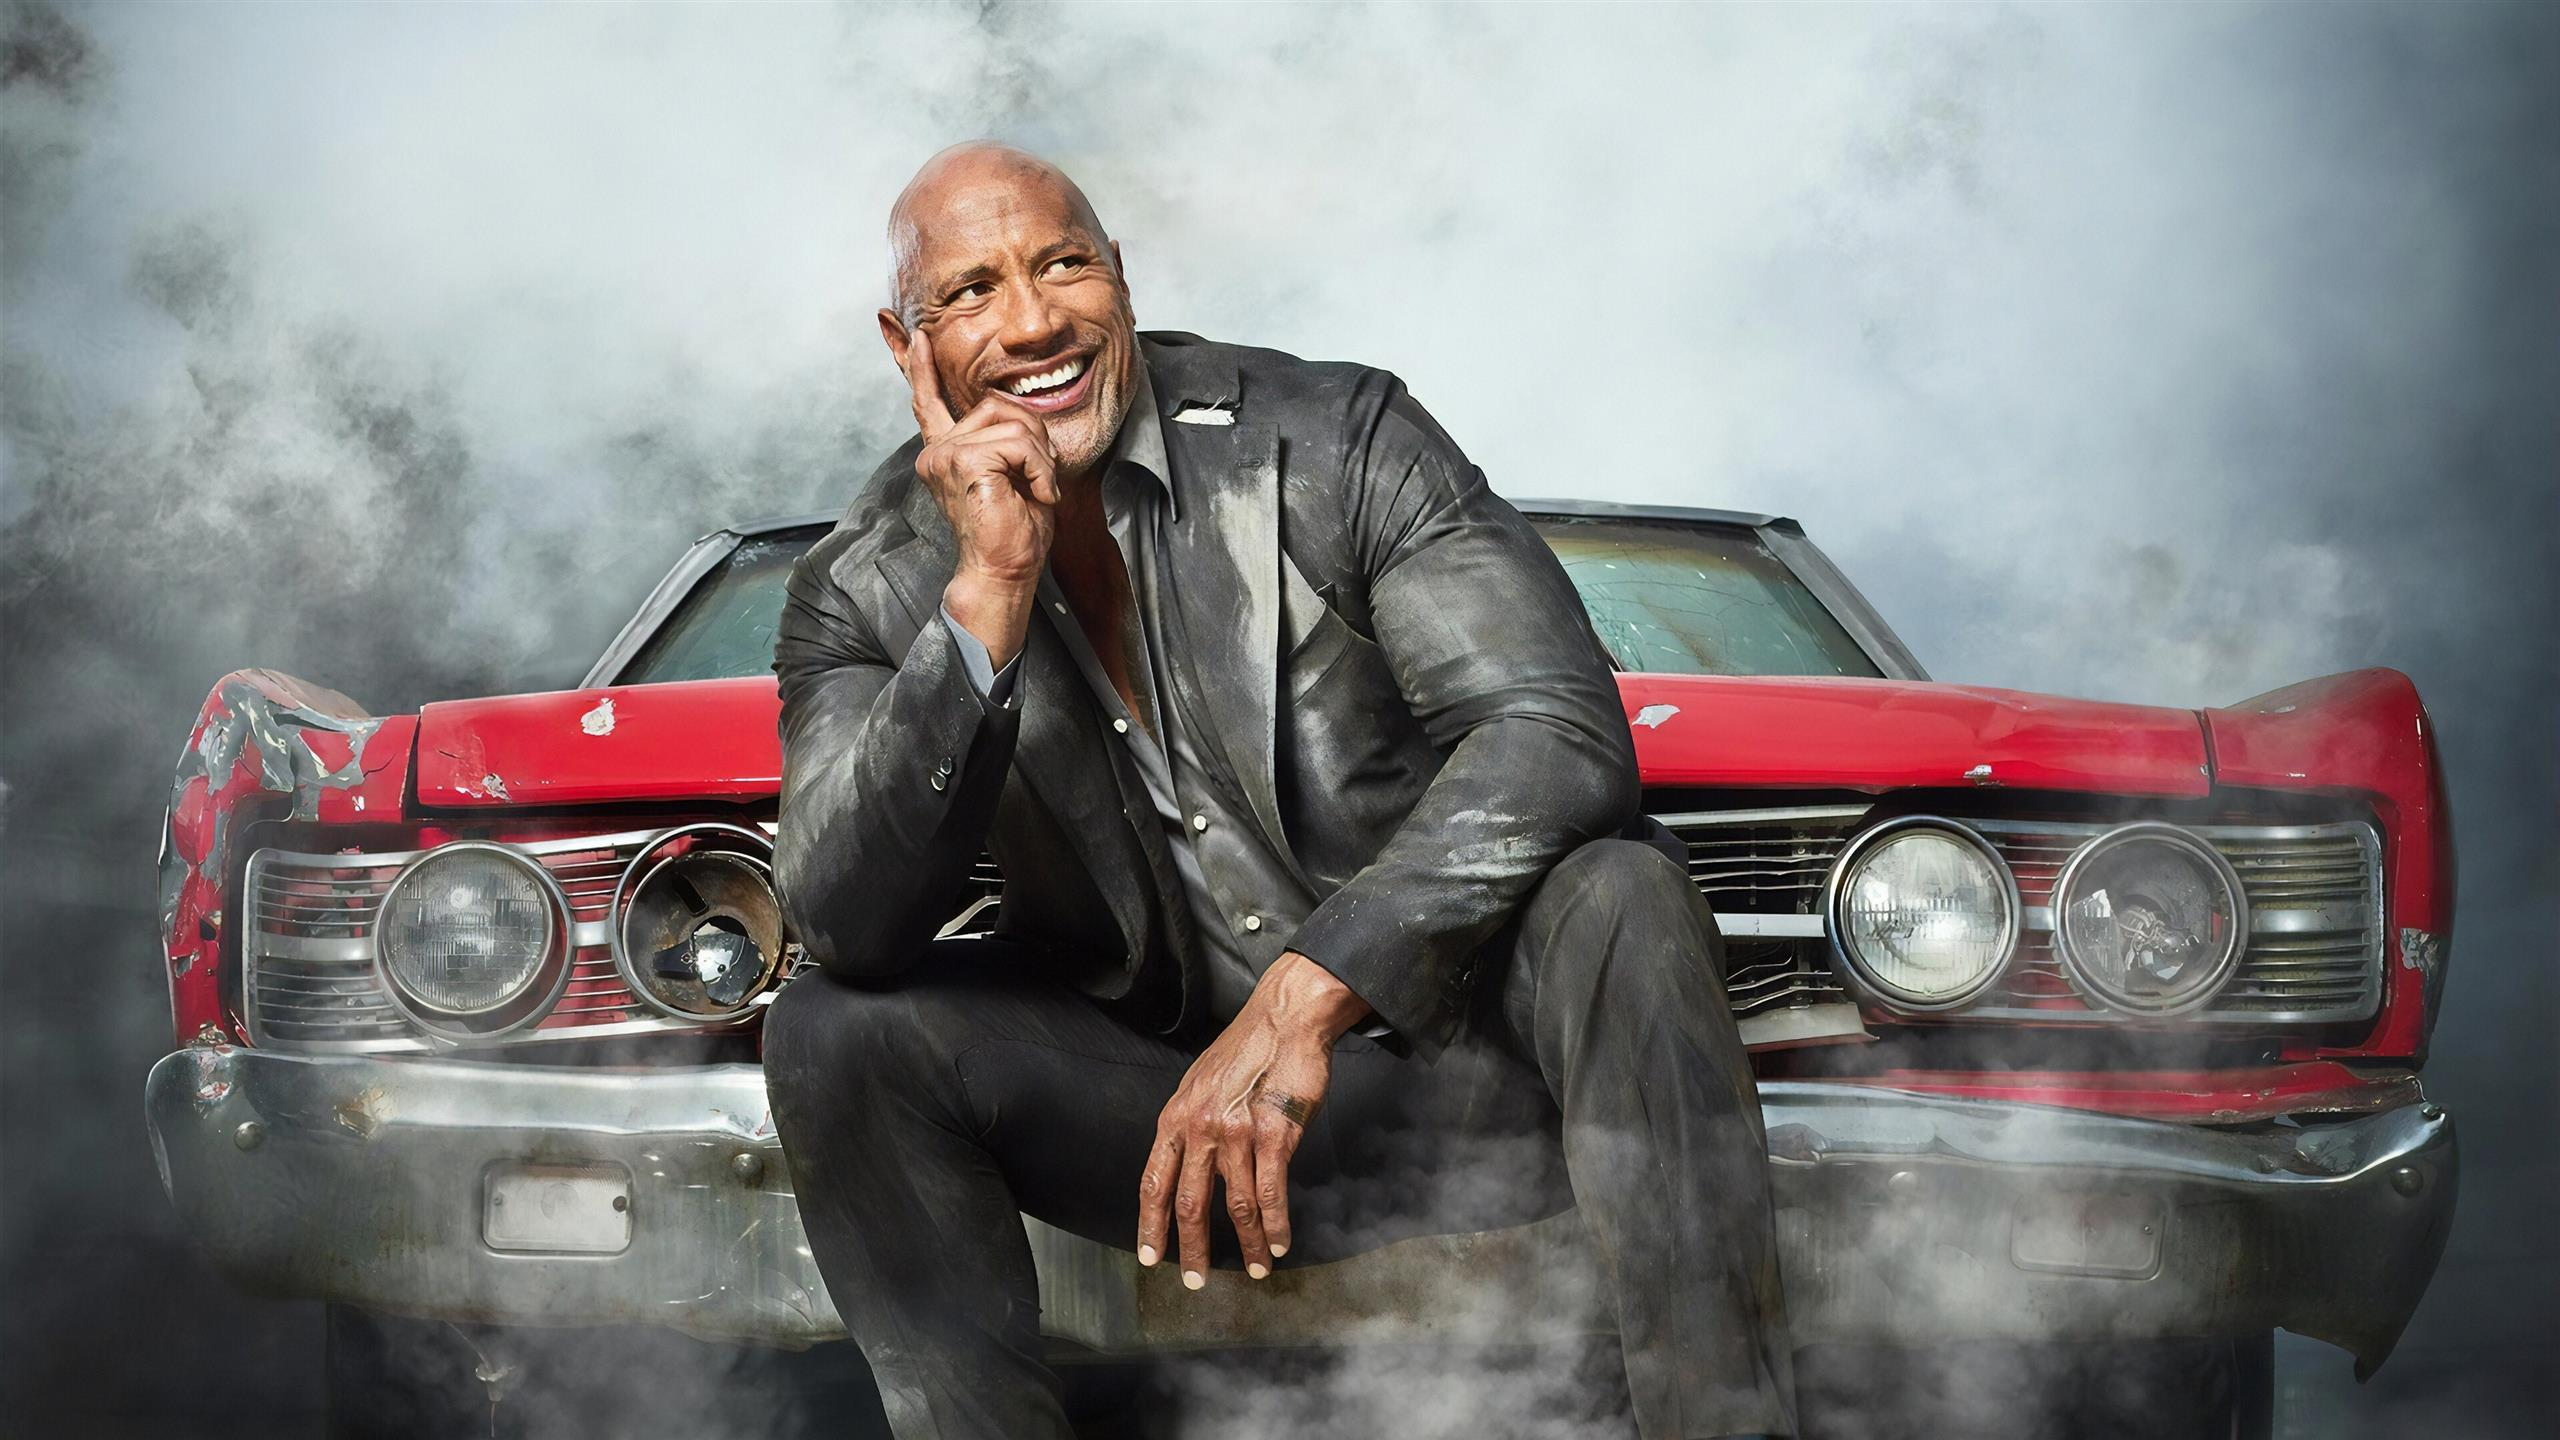 2560x1440 Fast and Furious Presents Dwayne Johnson As Hobbs 4K Wallpaper